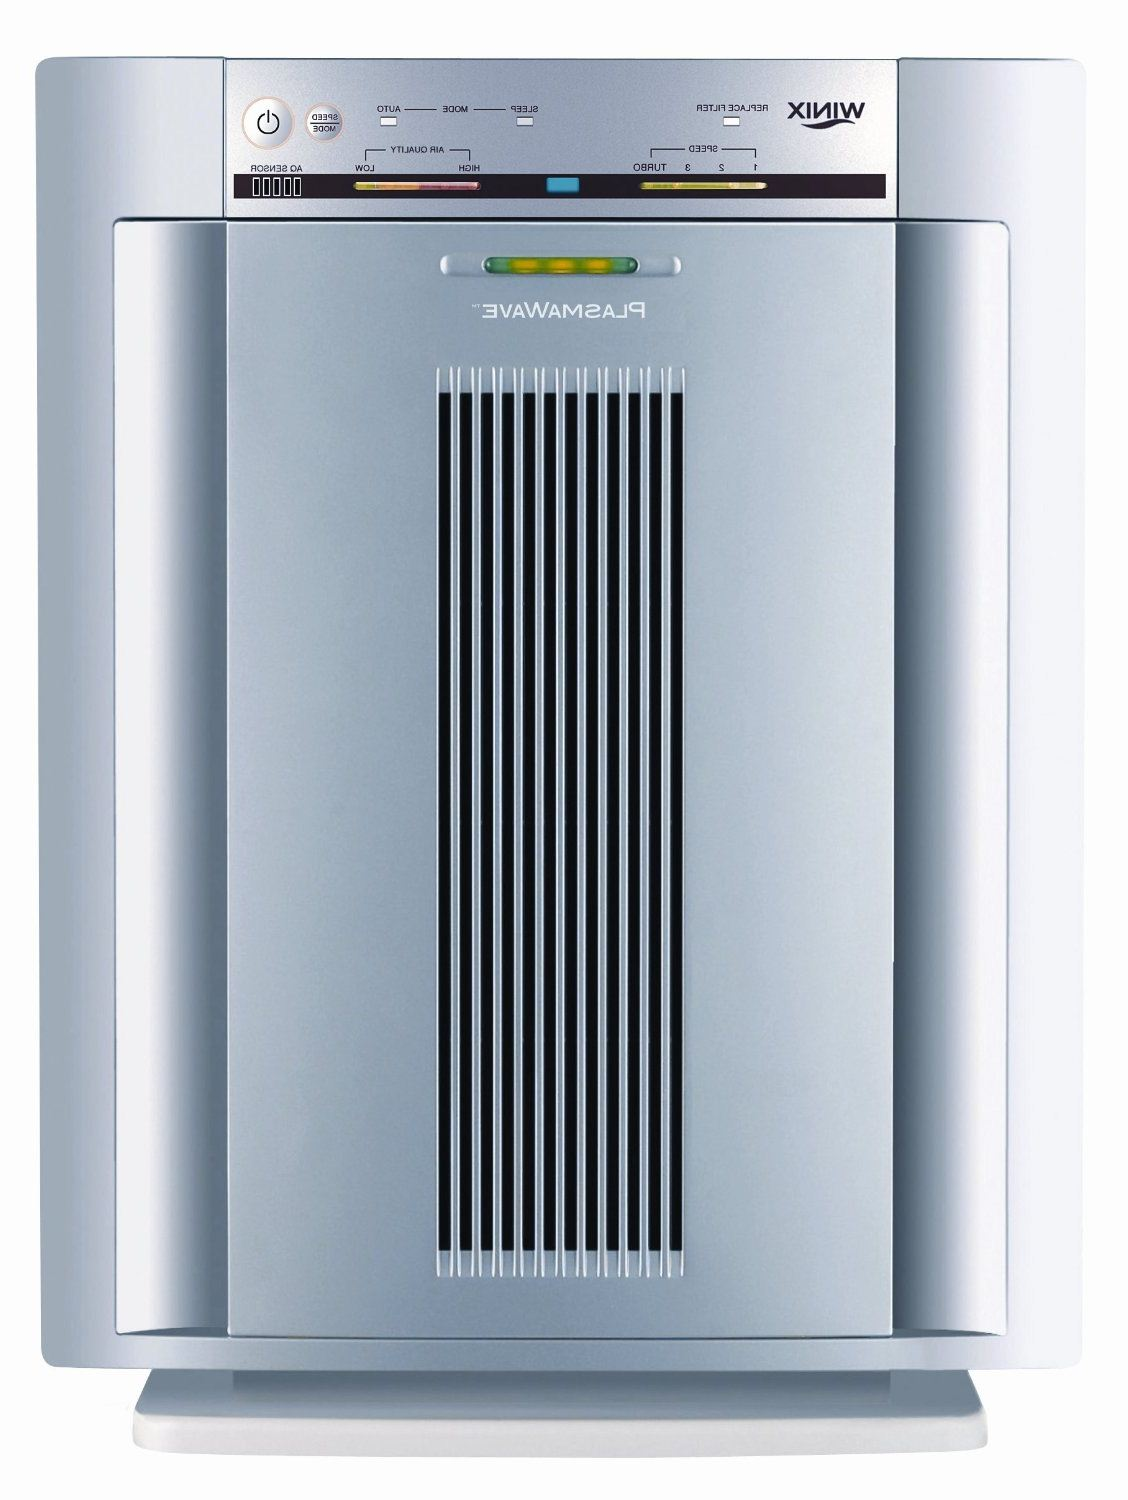 Photo credit- air-purifier-power.com